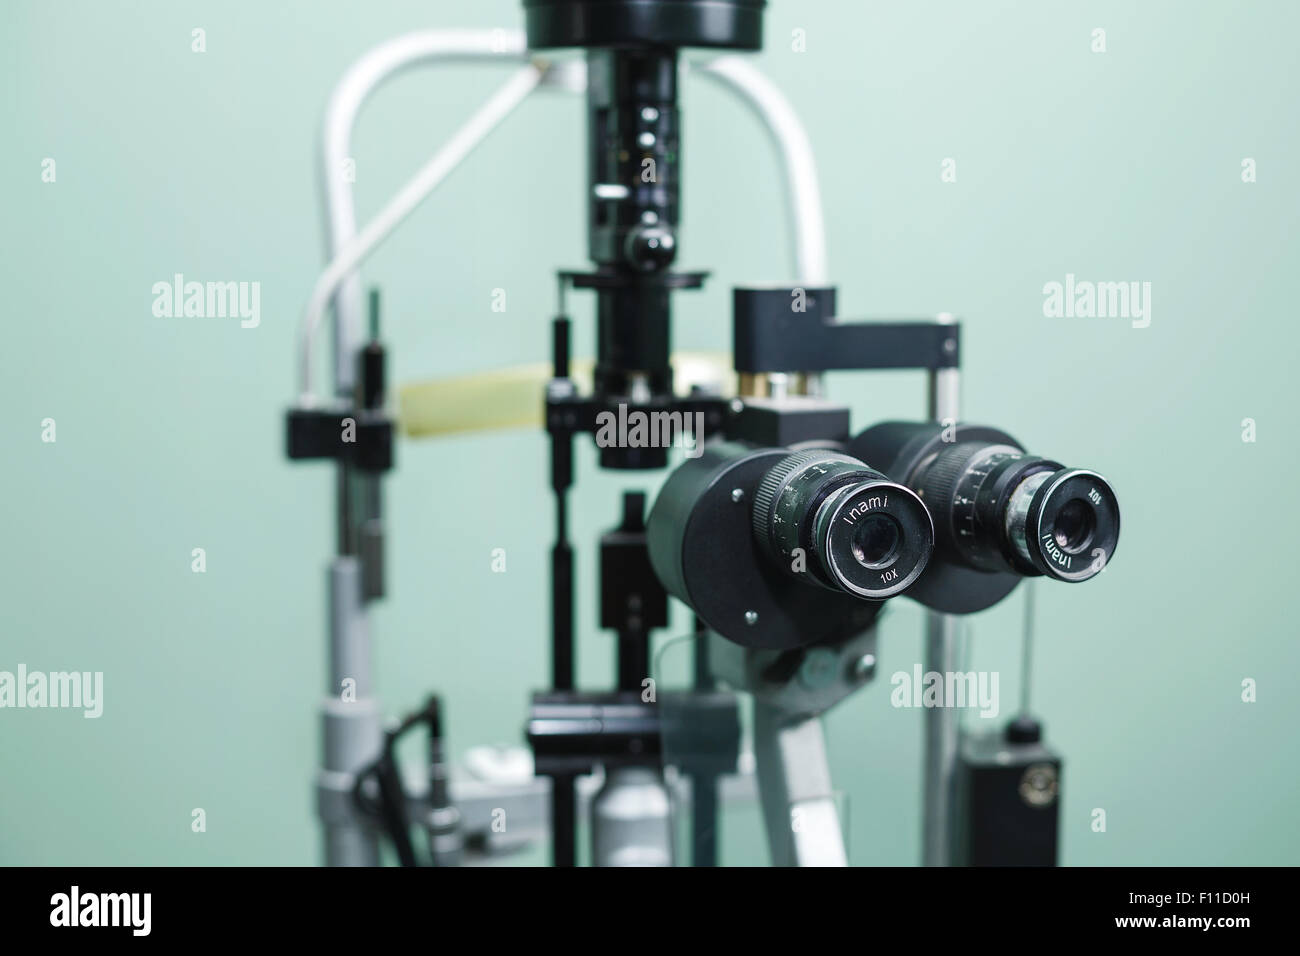 Medical optometrist equipment used for  eye exams - Stock Image